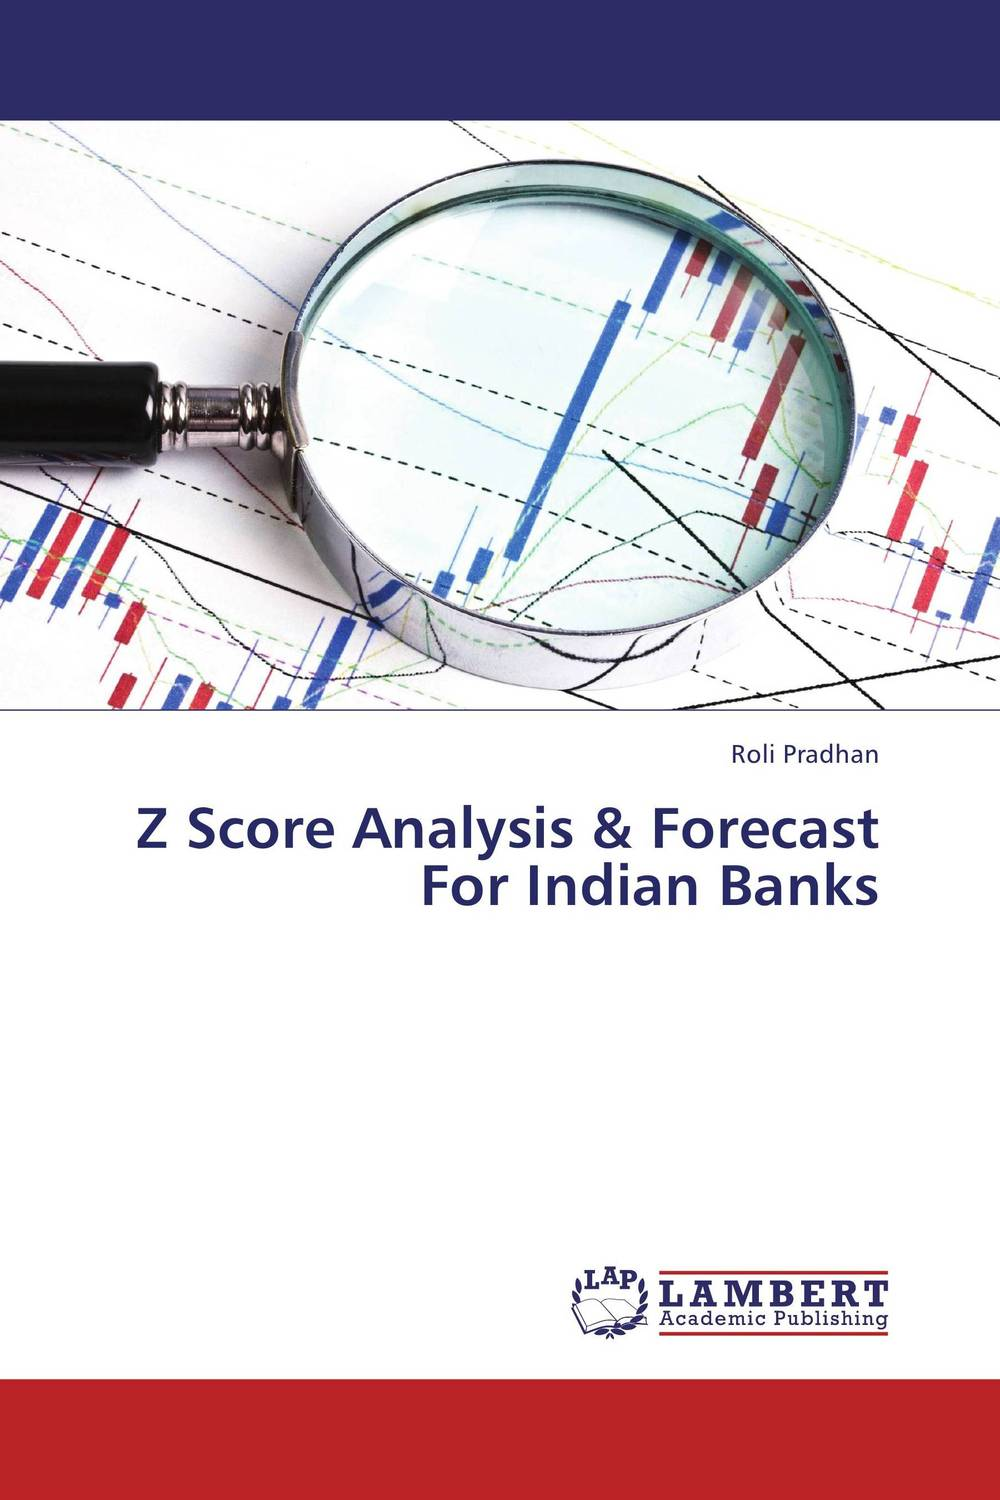 Z Score Analysis & Forecast For Indian Banks thomas stanton managing risk and performance a guide for government decision makers